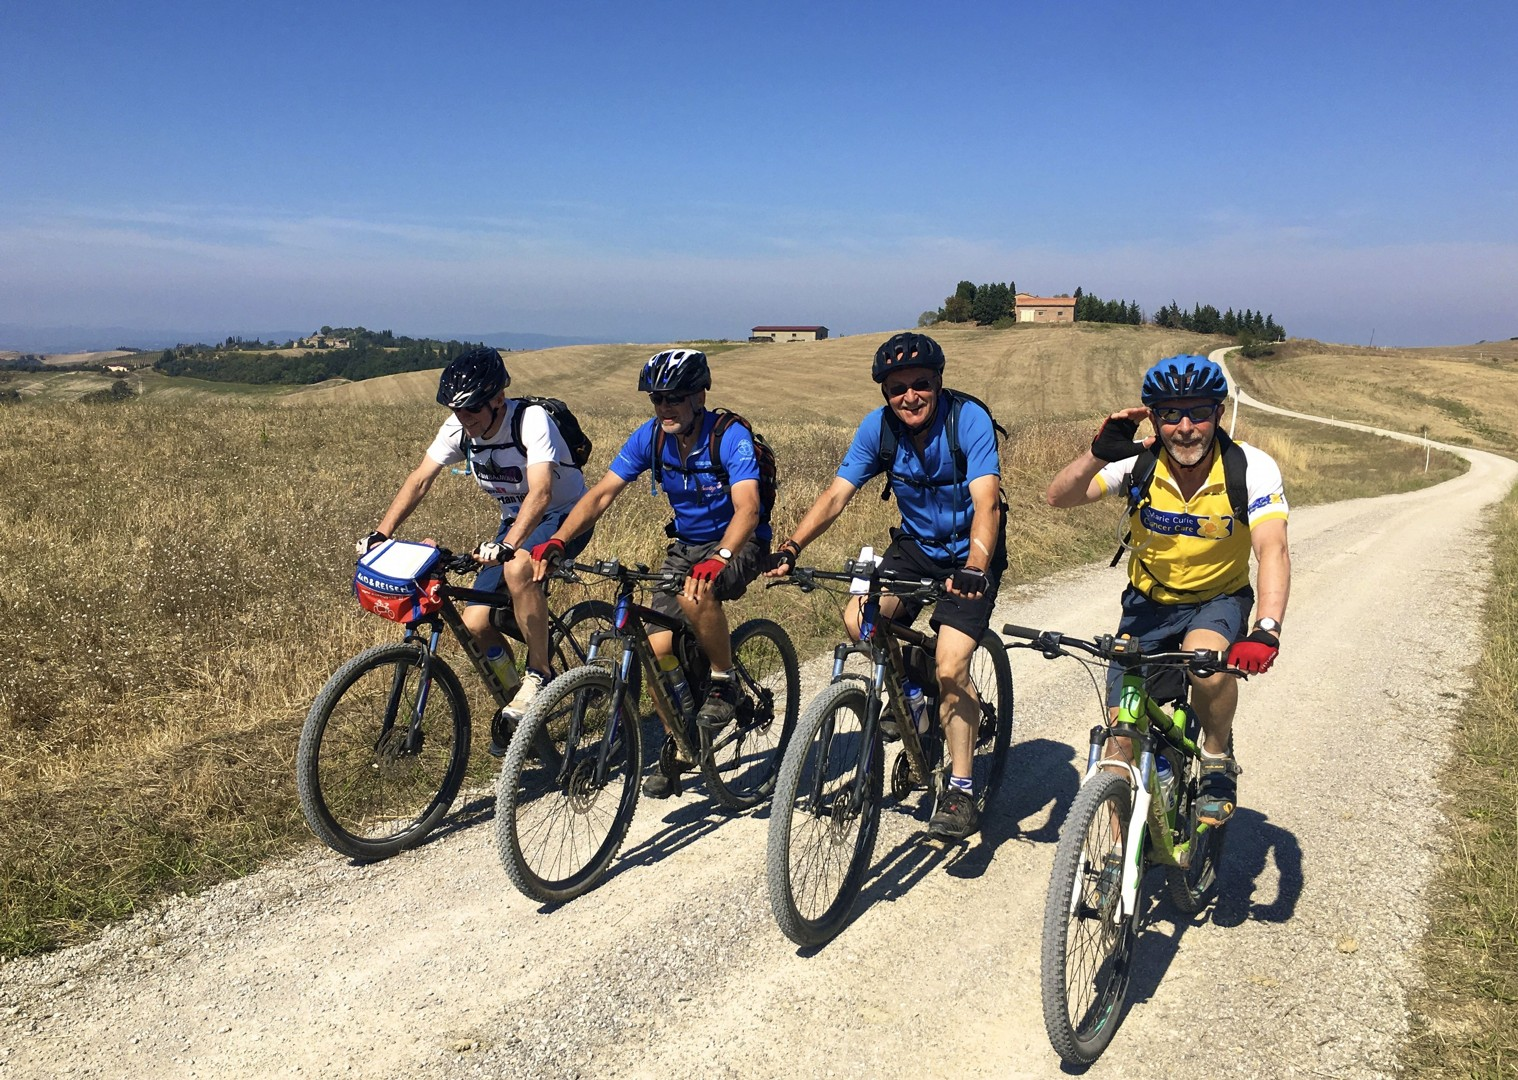 mountain-biking-holiday-italy-tuscany.jpg - Italy - Tuscany - Sacred Routes  - Self Guided Mountain Bike Holiday - Mountain Biking